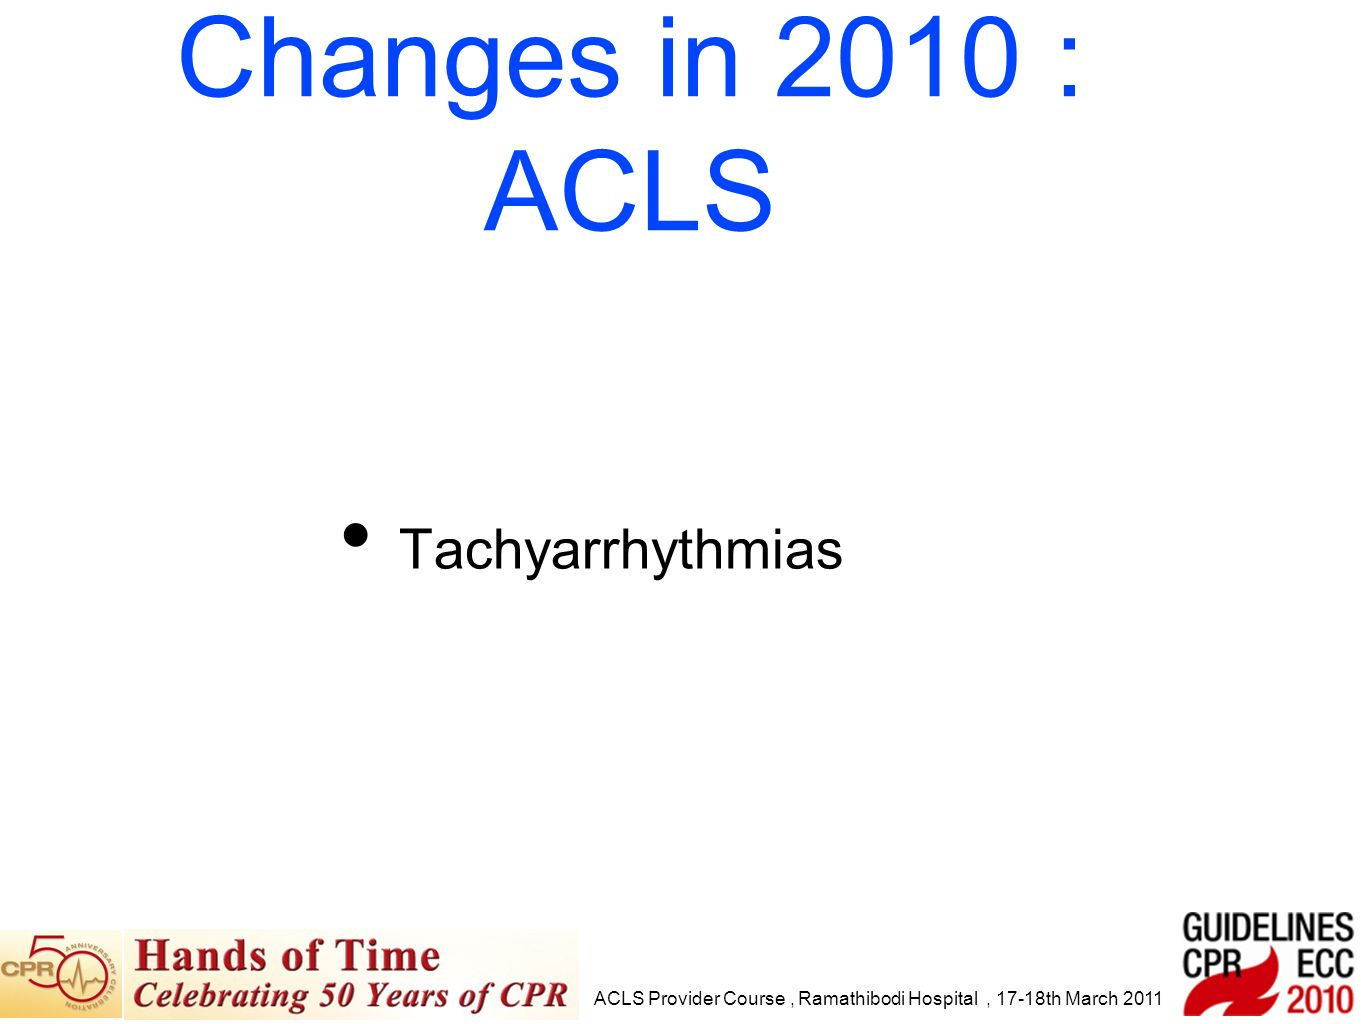 Tachyarrhythmias ACLS Provider Course, Ramathibodi Hospital, 17-18th March 2011 Changes in 2010 : ACLS